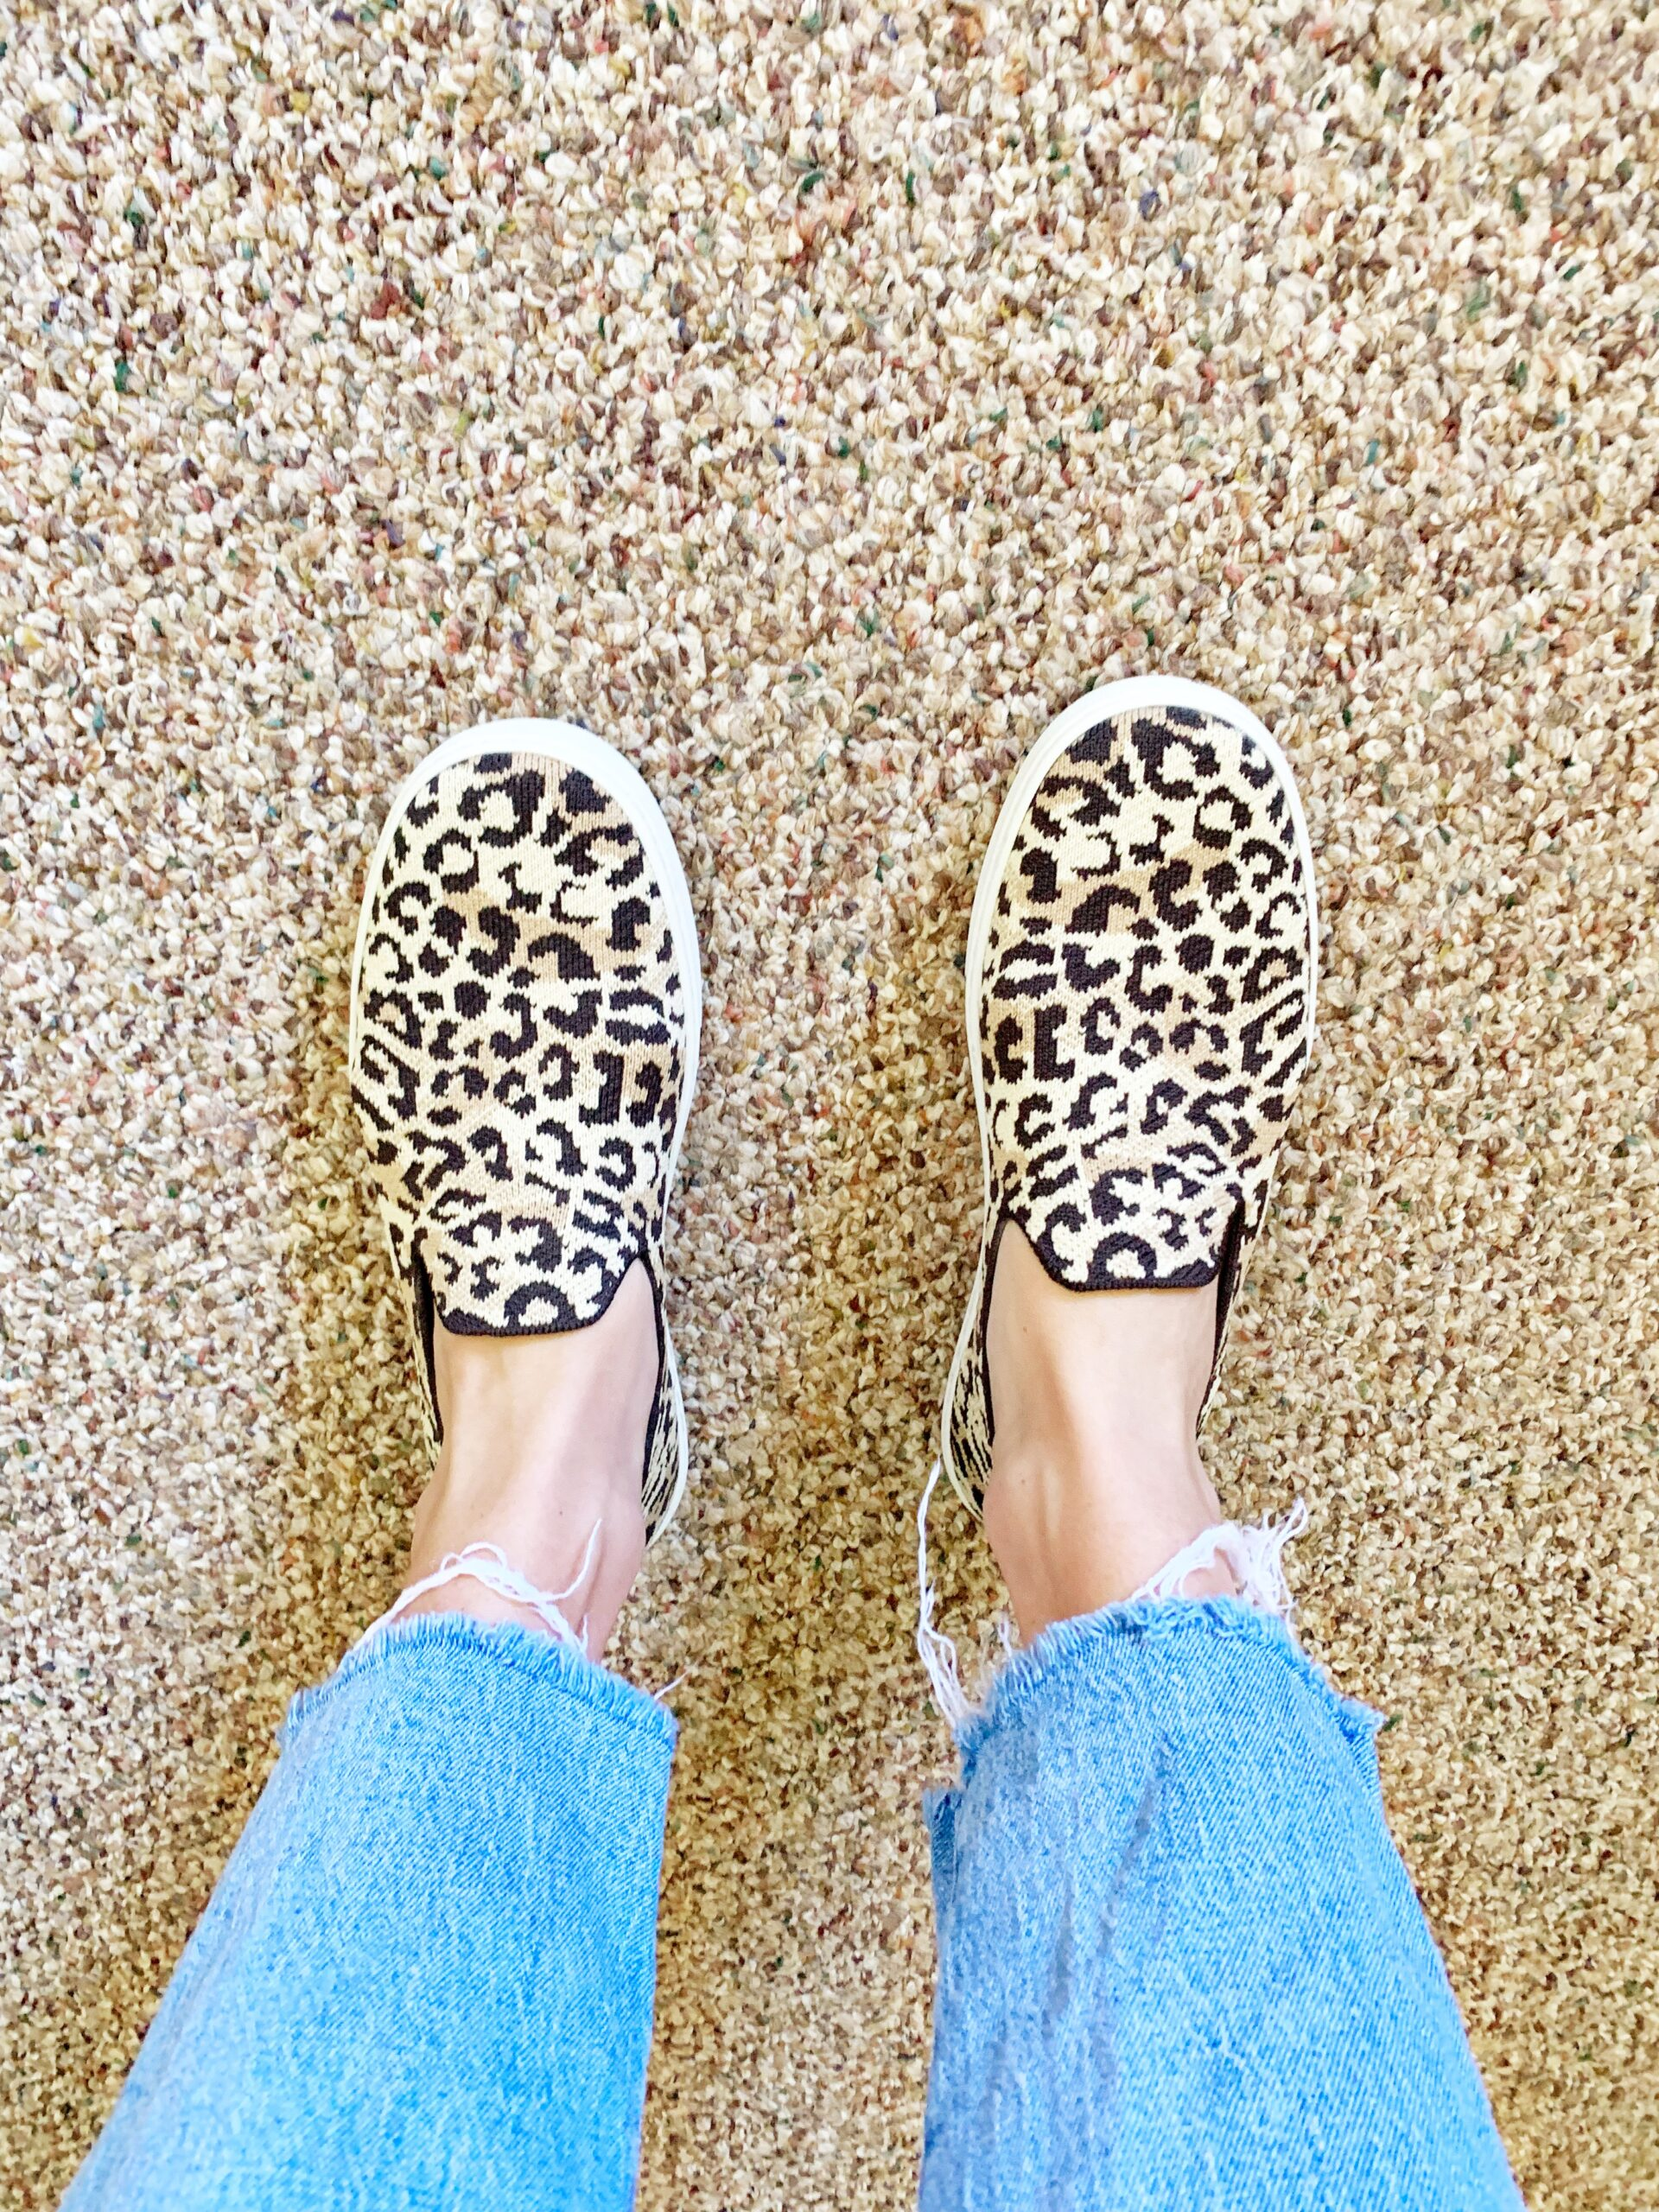 ROTHY'S SHOES - Considering a pair of Rothy's Shoes? Today I'm sharing all the details about the #1 question I get: Are Rothy's are worth it? | Rothys Shoes - Rothys Sneakers - Rothys Coupon - Rothys Discount Code - How to wash Rothys